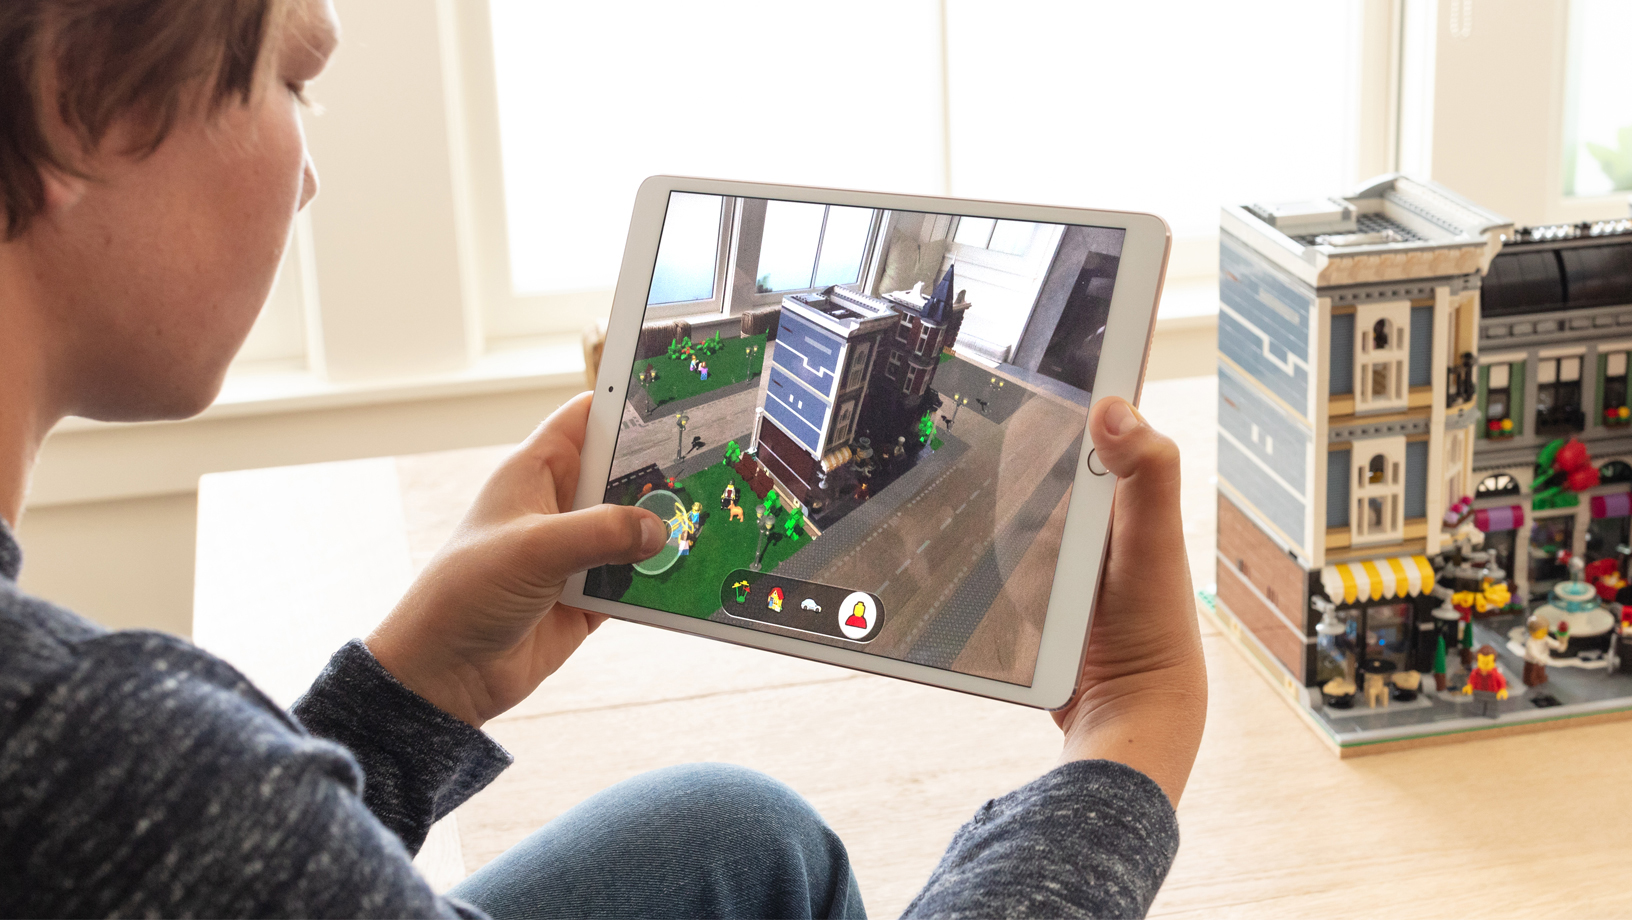 The ARKit apps and animated 3D models they use are built for iOS by Macs.